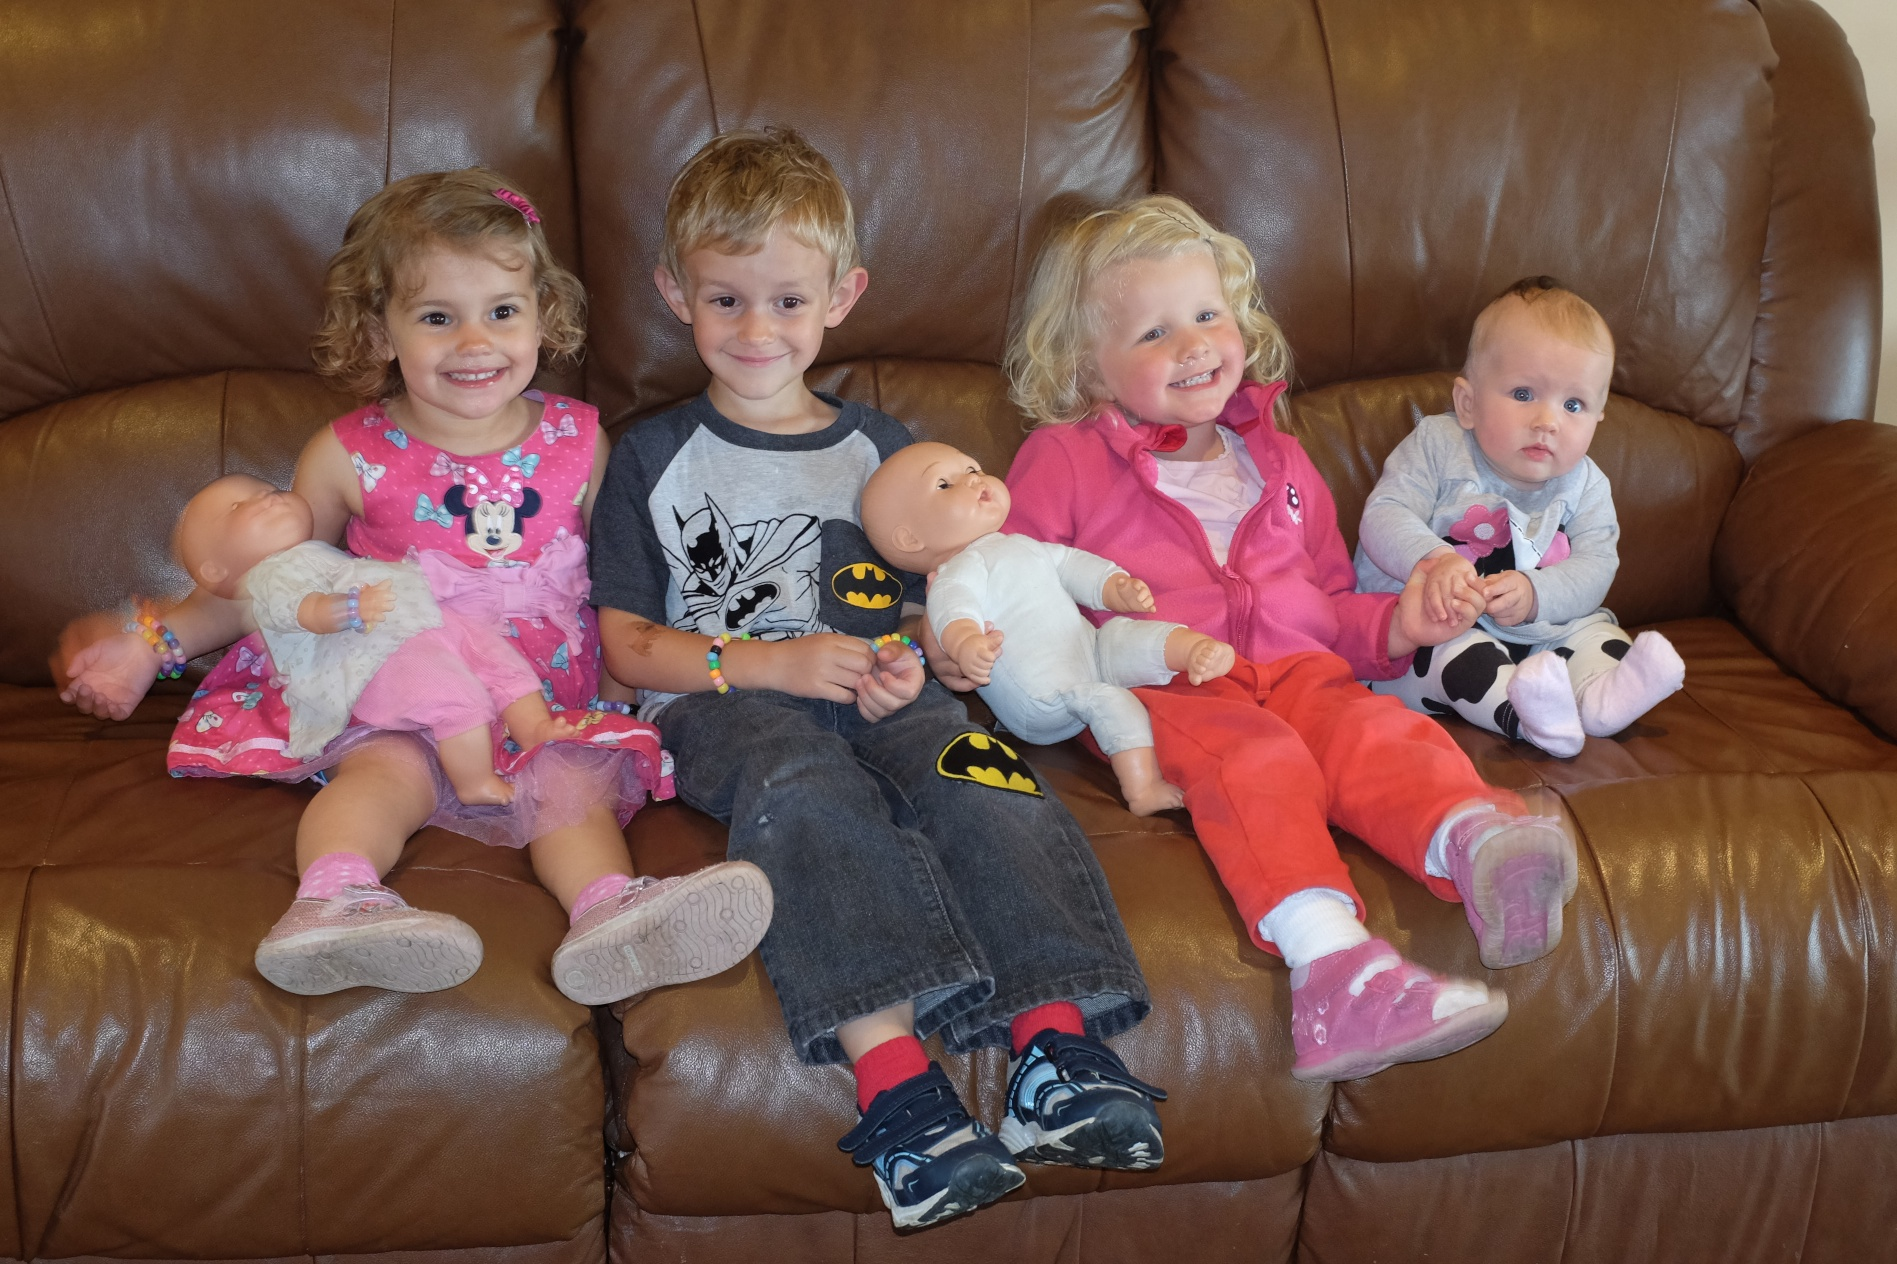 From Left to Right: Baby Ginger, Hannah, Kian, Baby, Ciara, and Roisin